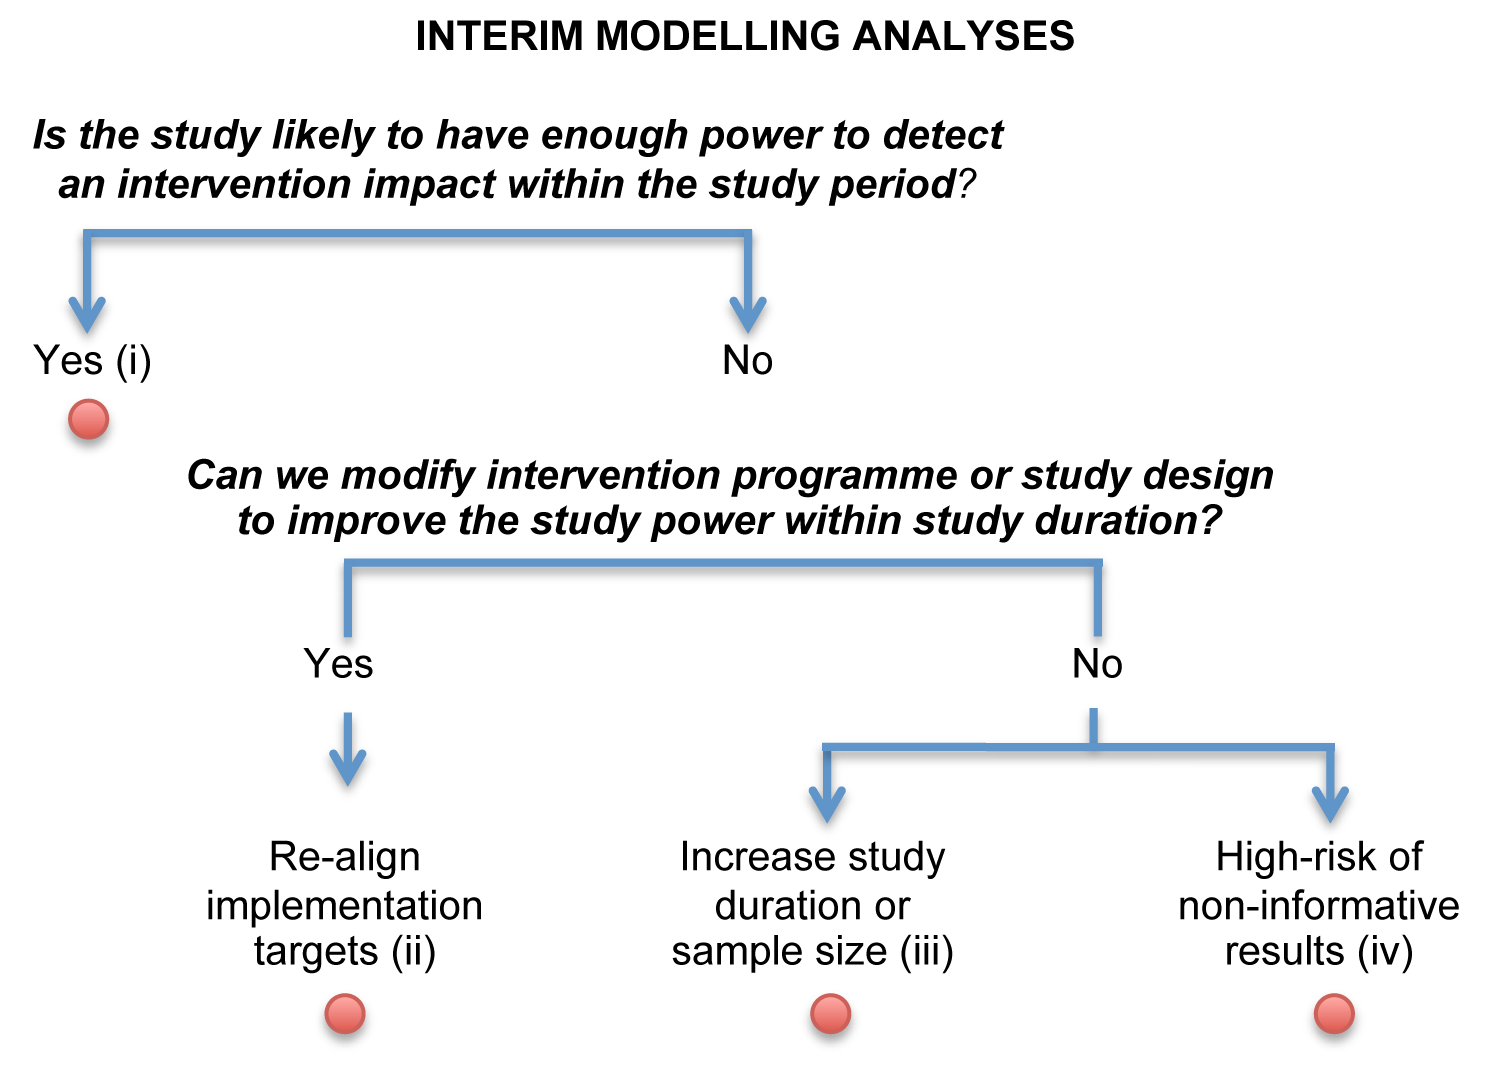 Logical flow of interim modelling analyses.